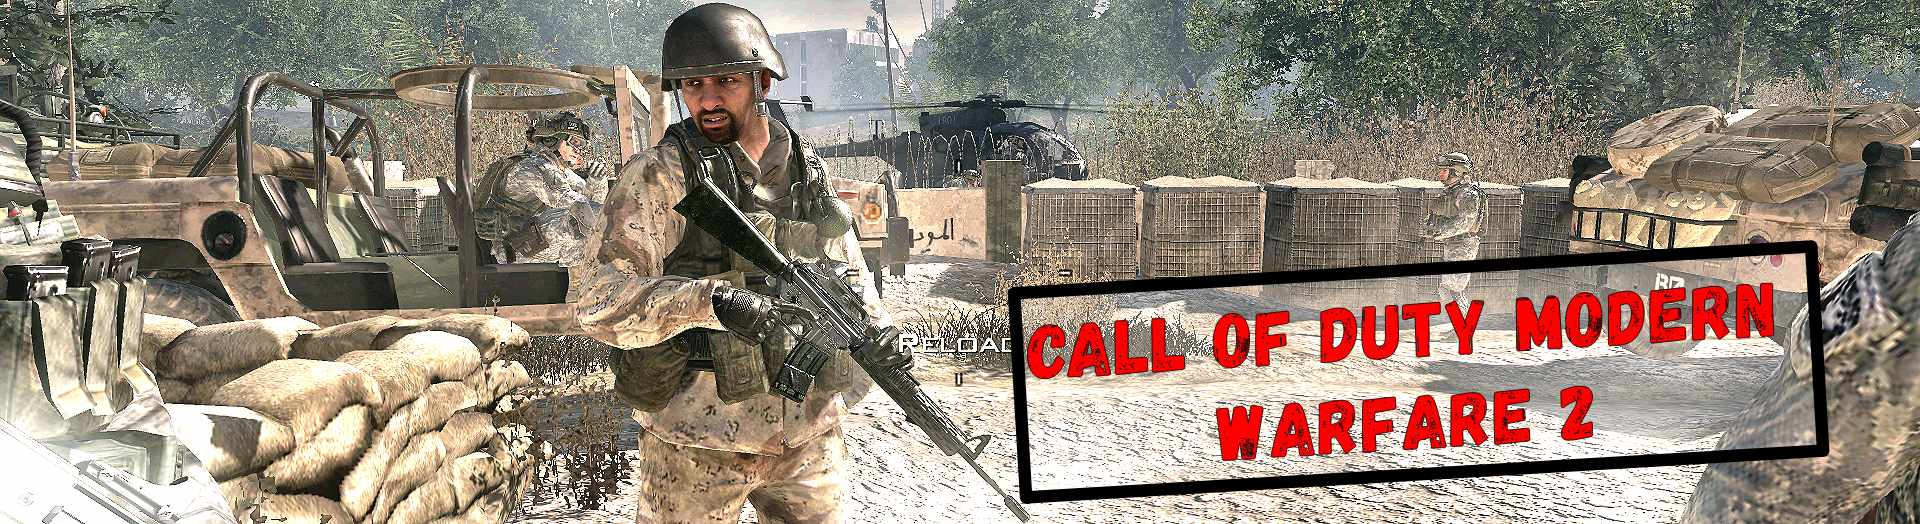 call of duty modern warfare 2 highly compressed download for pc just in 3.85 GB